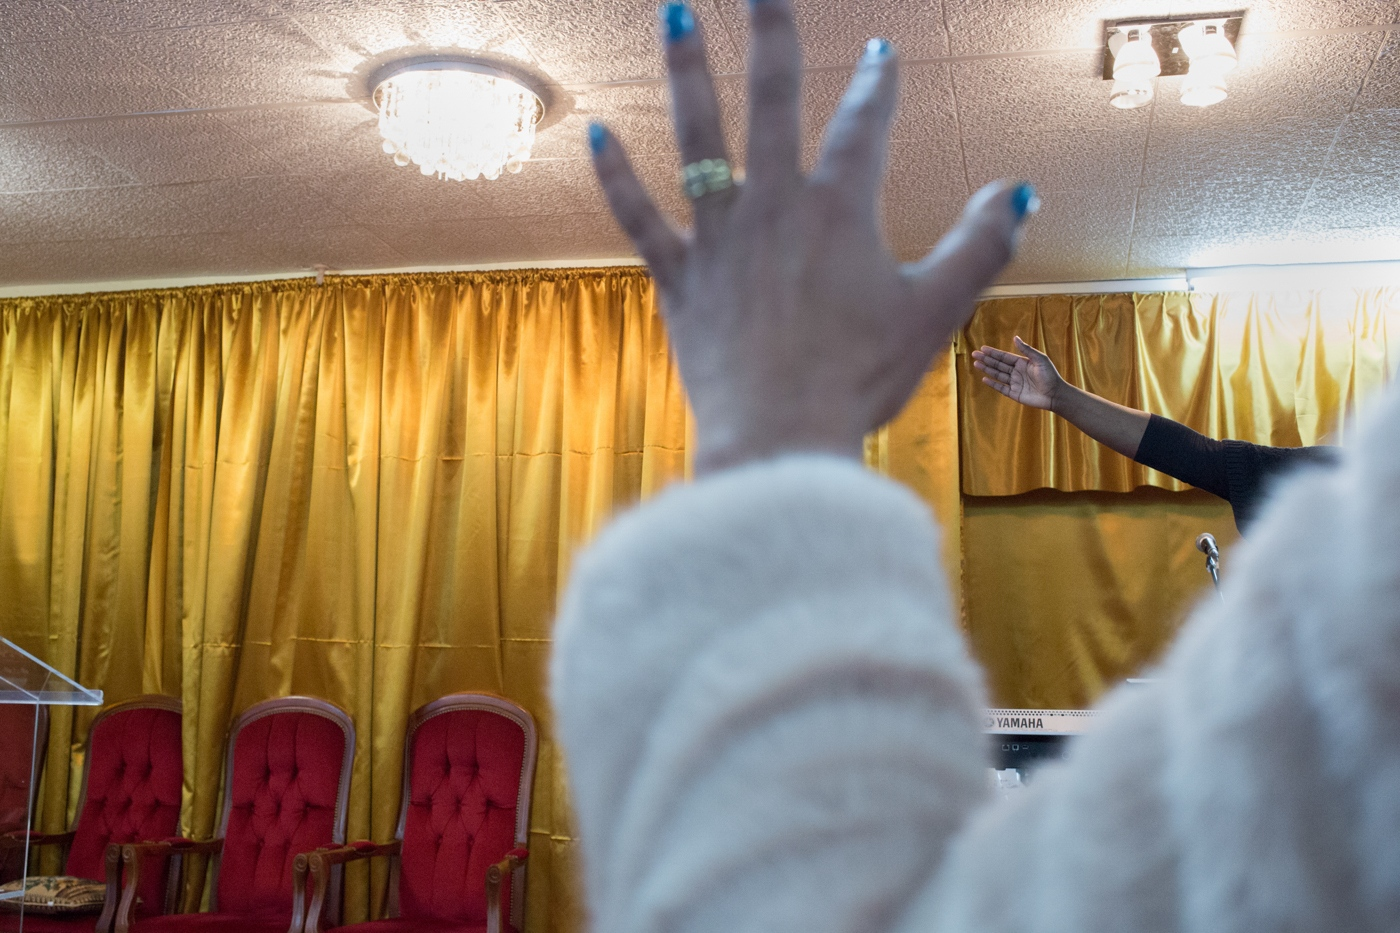 Prayers in an African Christian church in Bagnollet. The Protestant Christian religion, mixed with African rituals, and Gospel as a religious rhythm, are very common in France as well. Bobigny, Ile de France, France, 2015